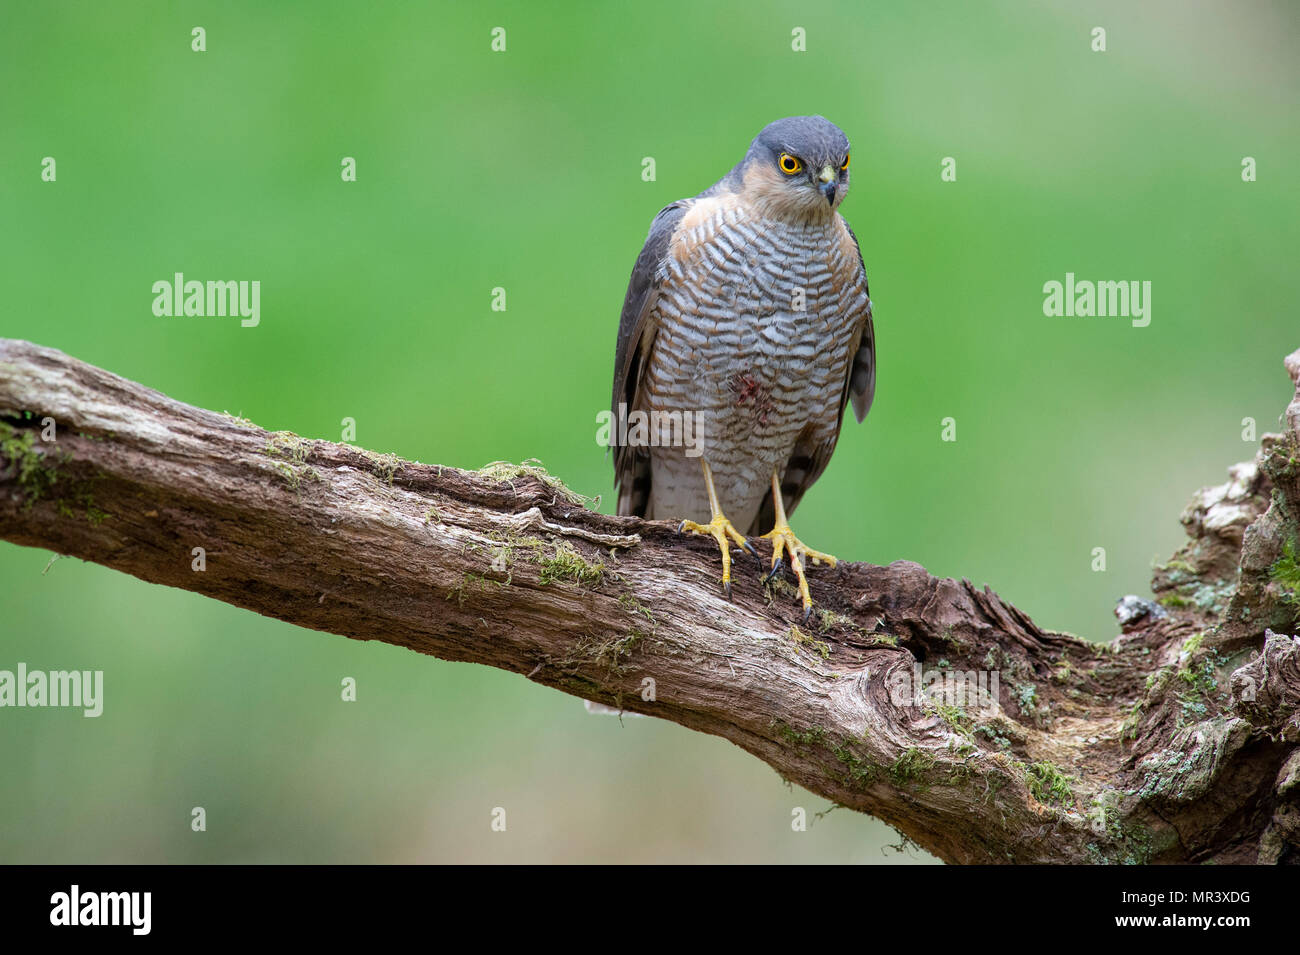 A female Sparrowhawk (Accipiter nisus) perched on a branch in British woodland. Stock Photo